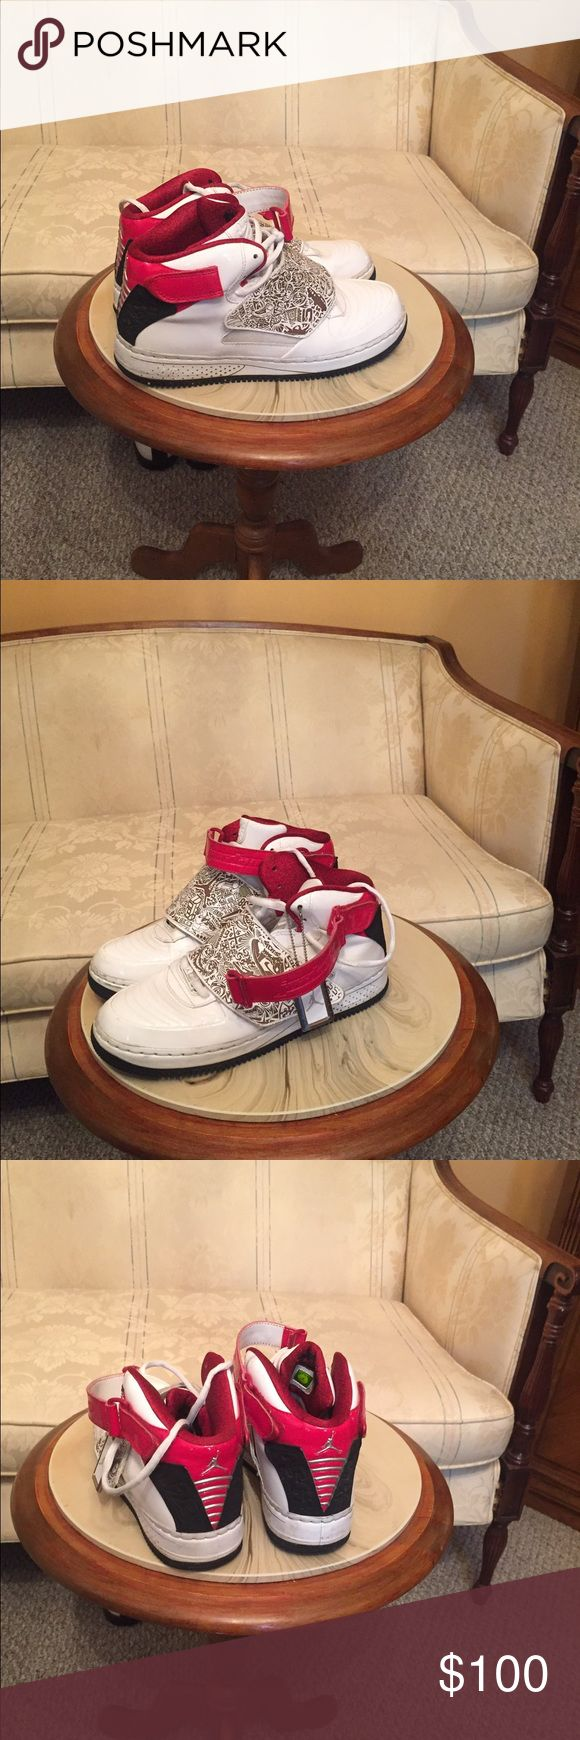 White patent leather Air Force one size 8 1/2 Nike Air Force one . White patent leather sneakers size 8 1/2 in good condition. White blame and red Nike Shoes Sneakers